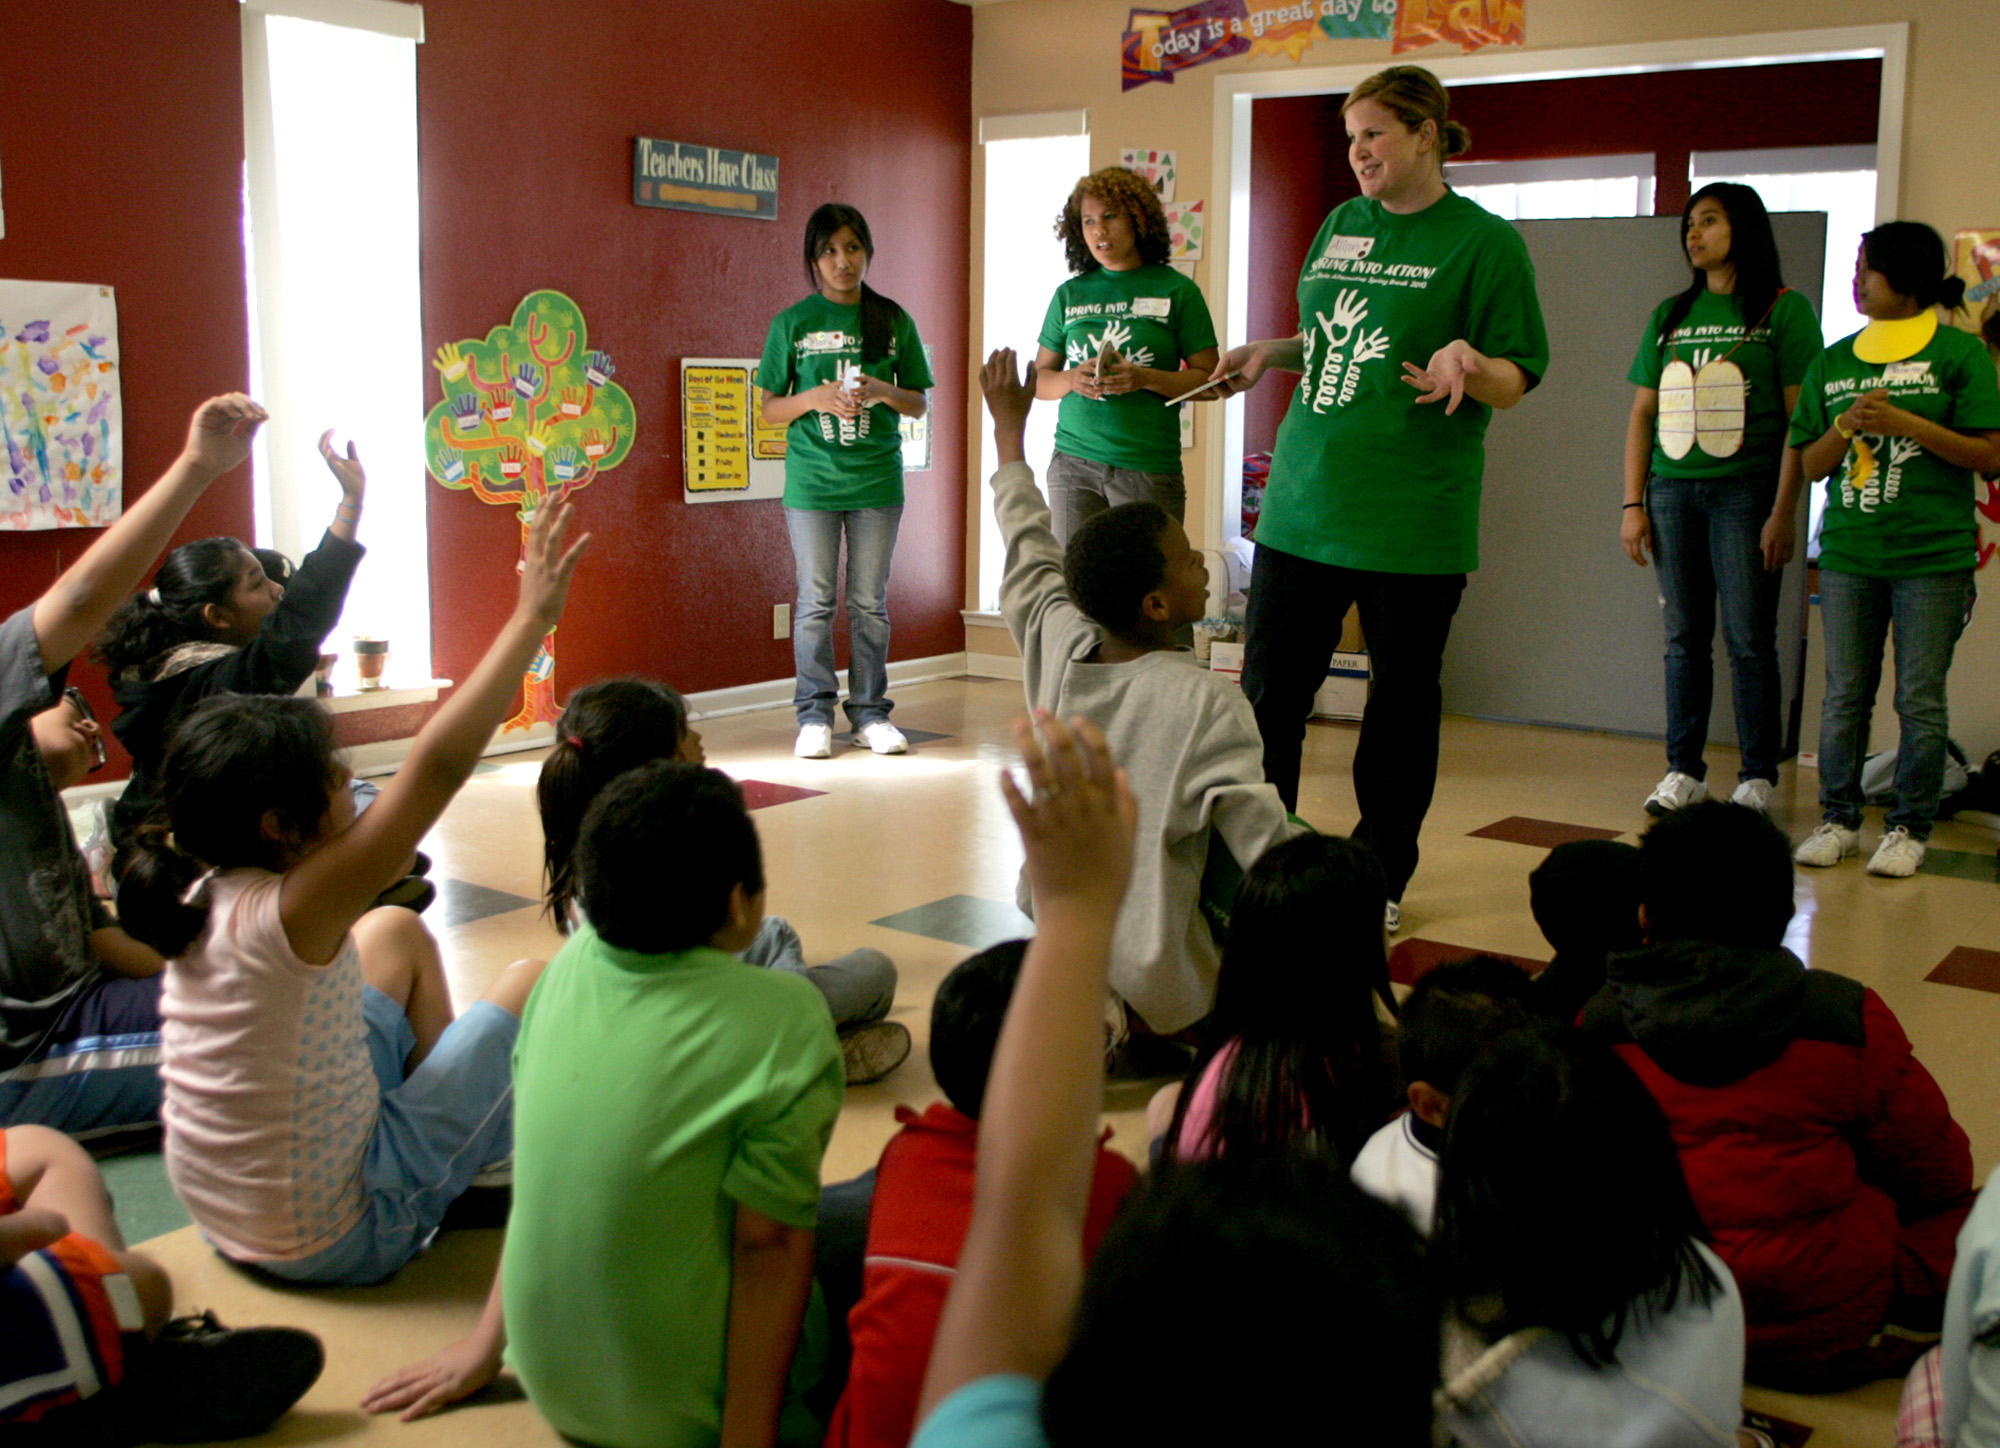 Fresno State student Alison Edwards, center, answers questions from kids after her group performed a play at Bigby Villa Apartments in Fresno, Califor...